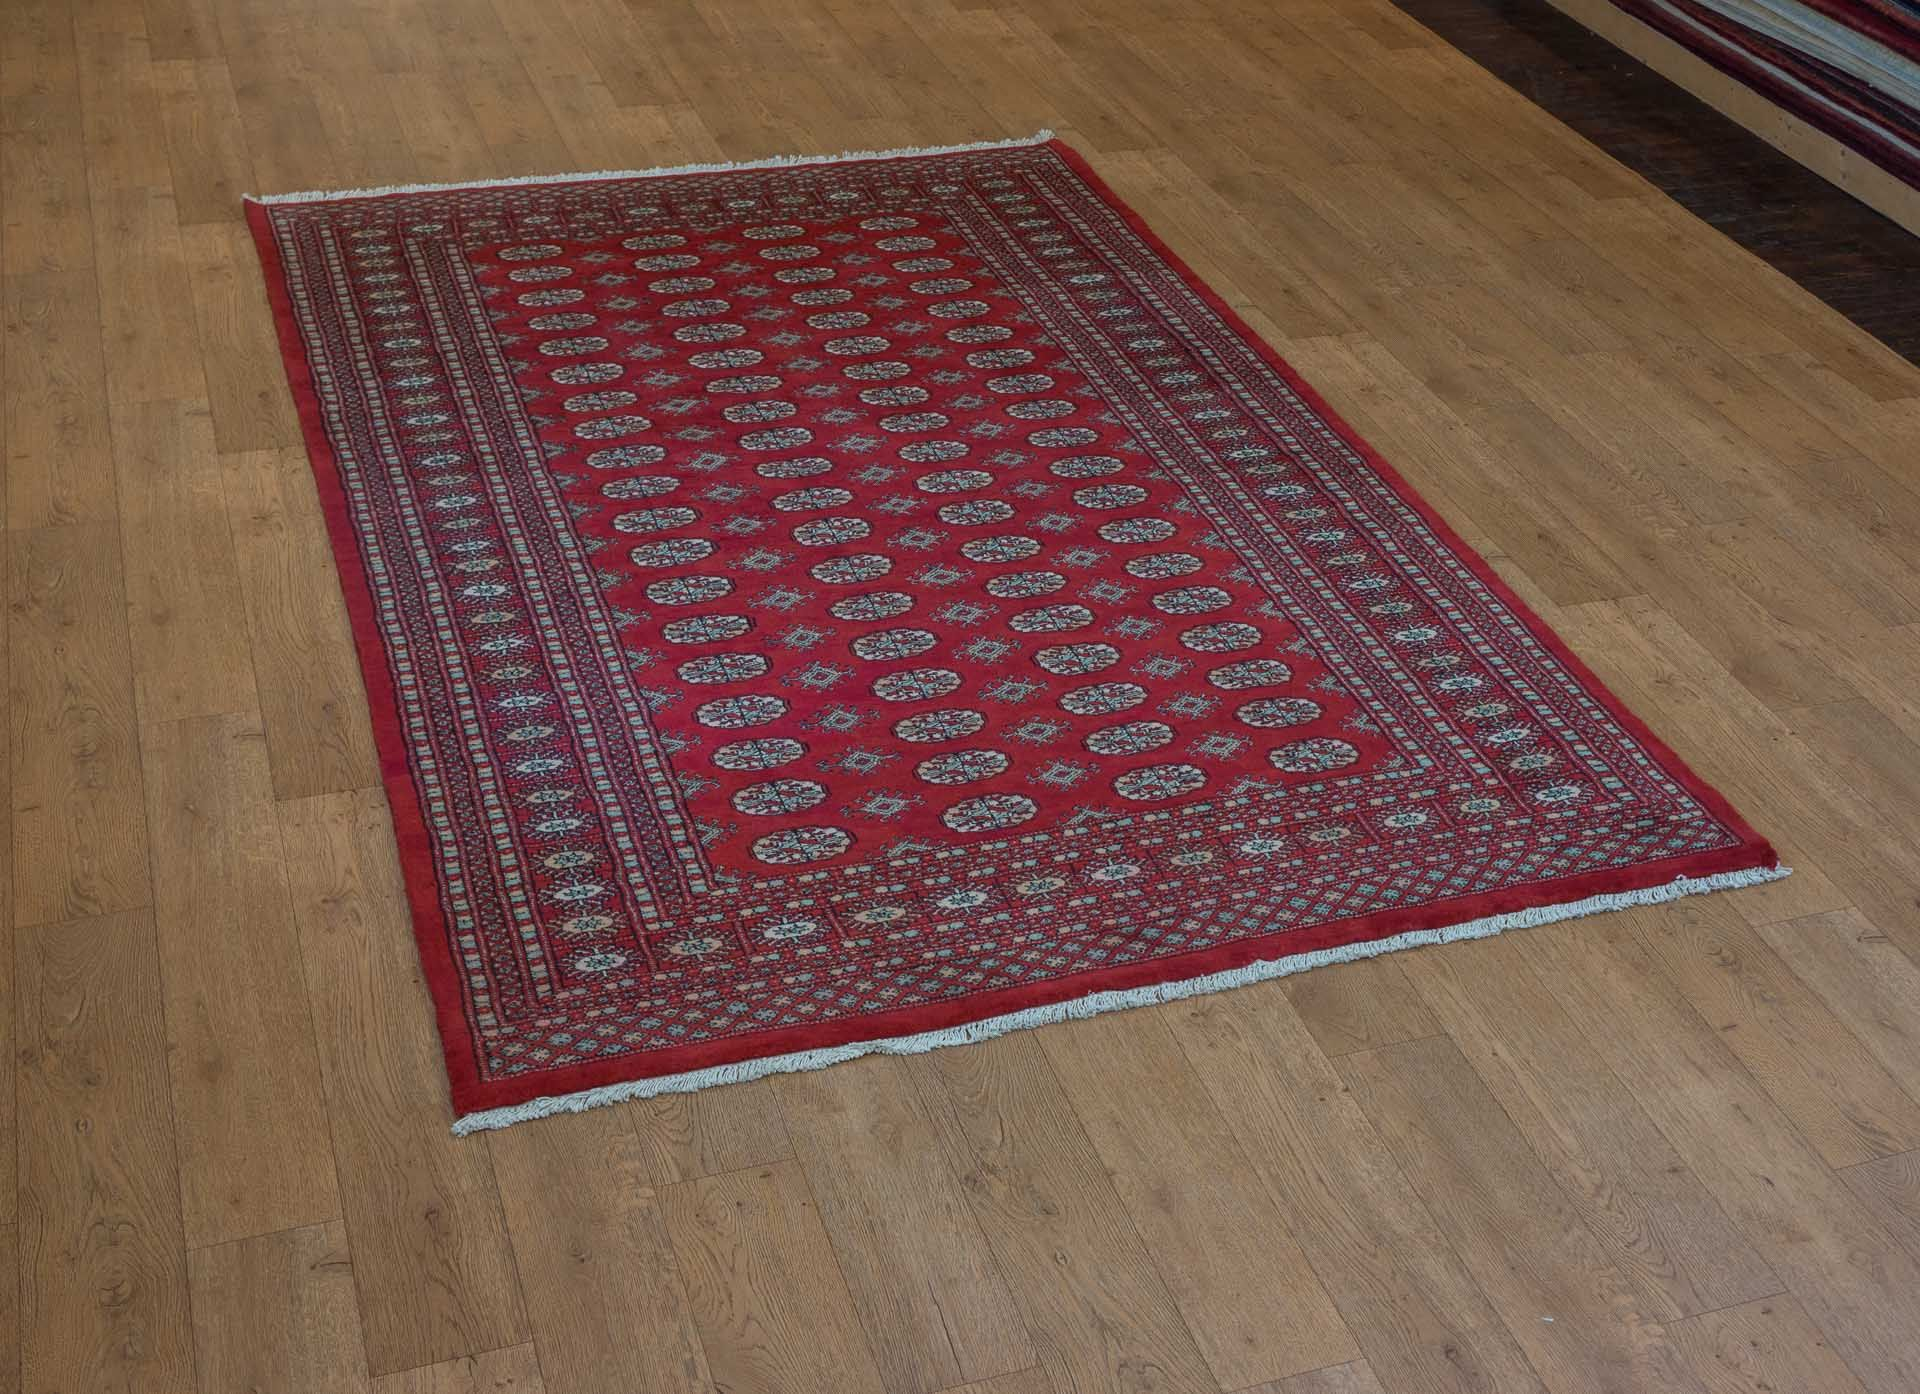 Hand Knotted Bokhara Rug From Pakistan Length 272 0cm By Width